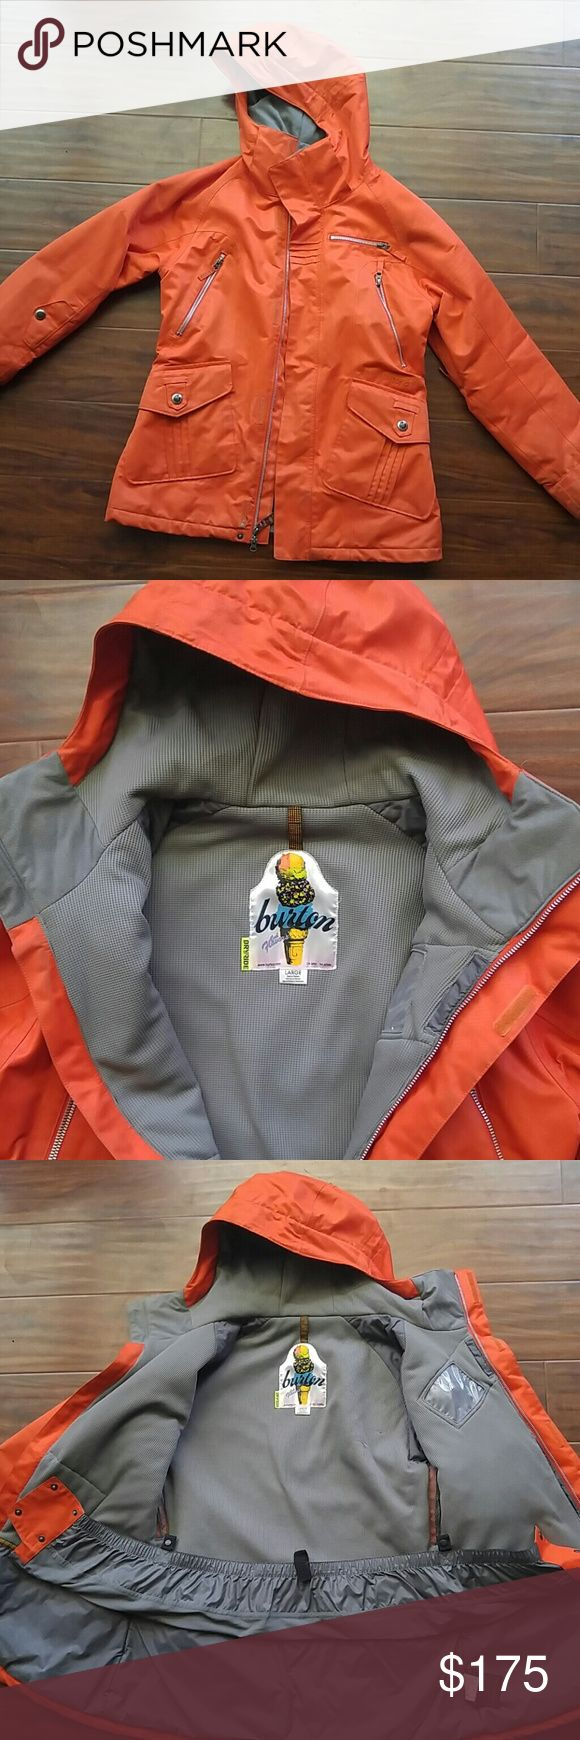 Womens Burton snowboard jacket Orange Burton snowboarding jacket. Size large. Thermal interior. Very warm. Waterproof. Slight staining on arm cuffs. Snow skirt. Many zipper pockets Burton Jackets & Coats